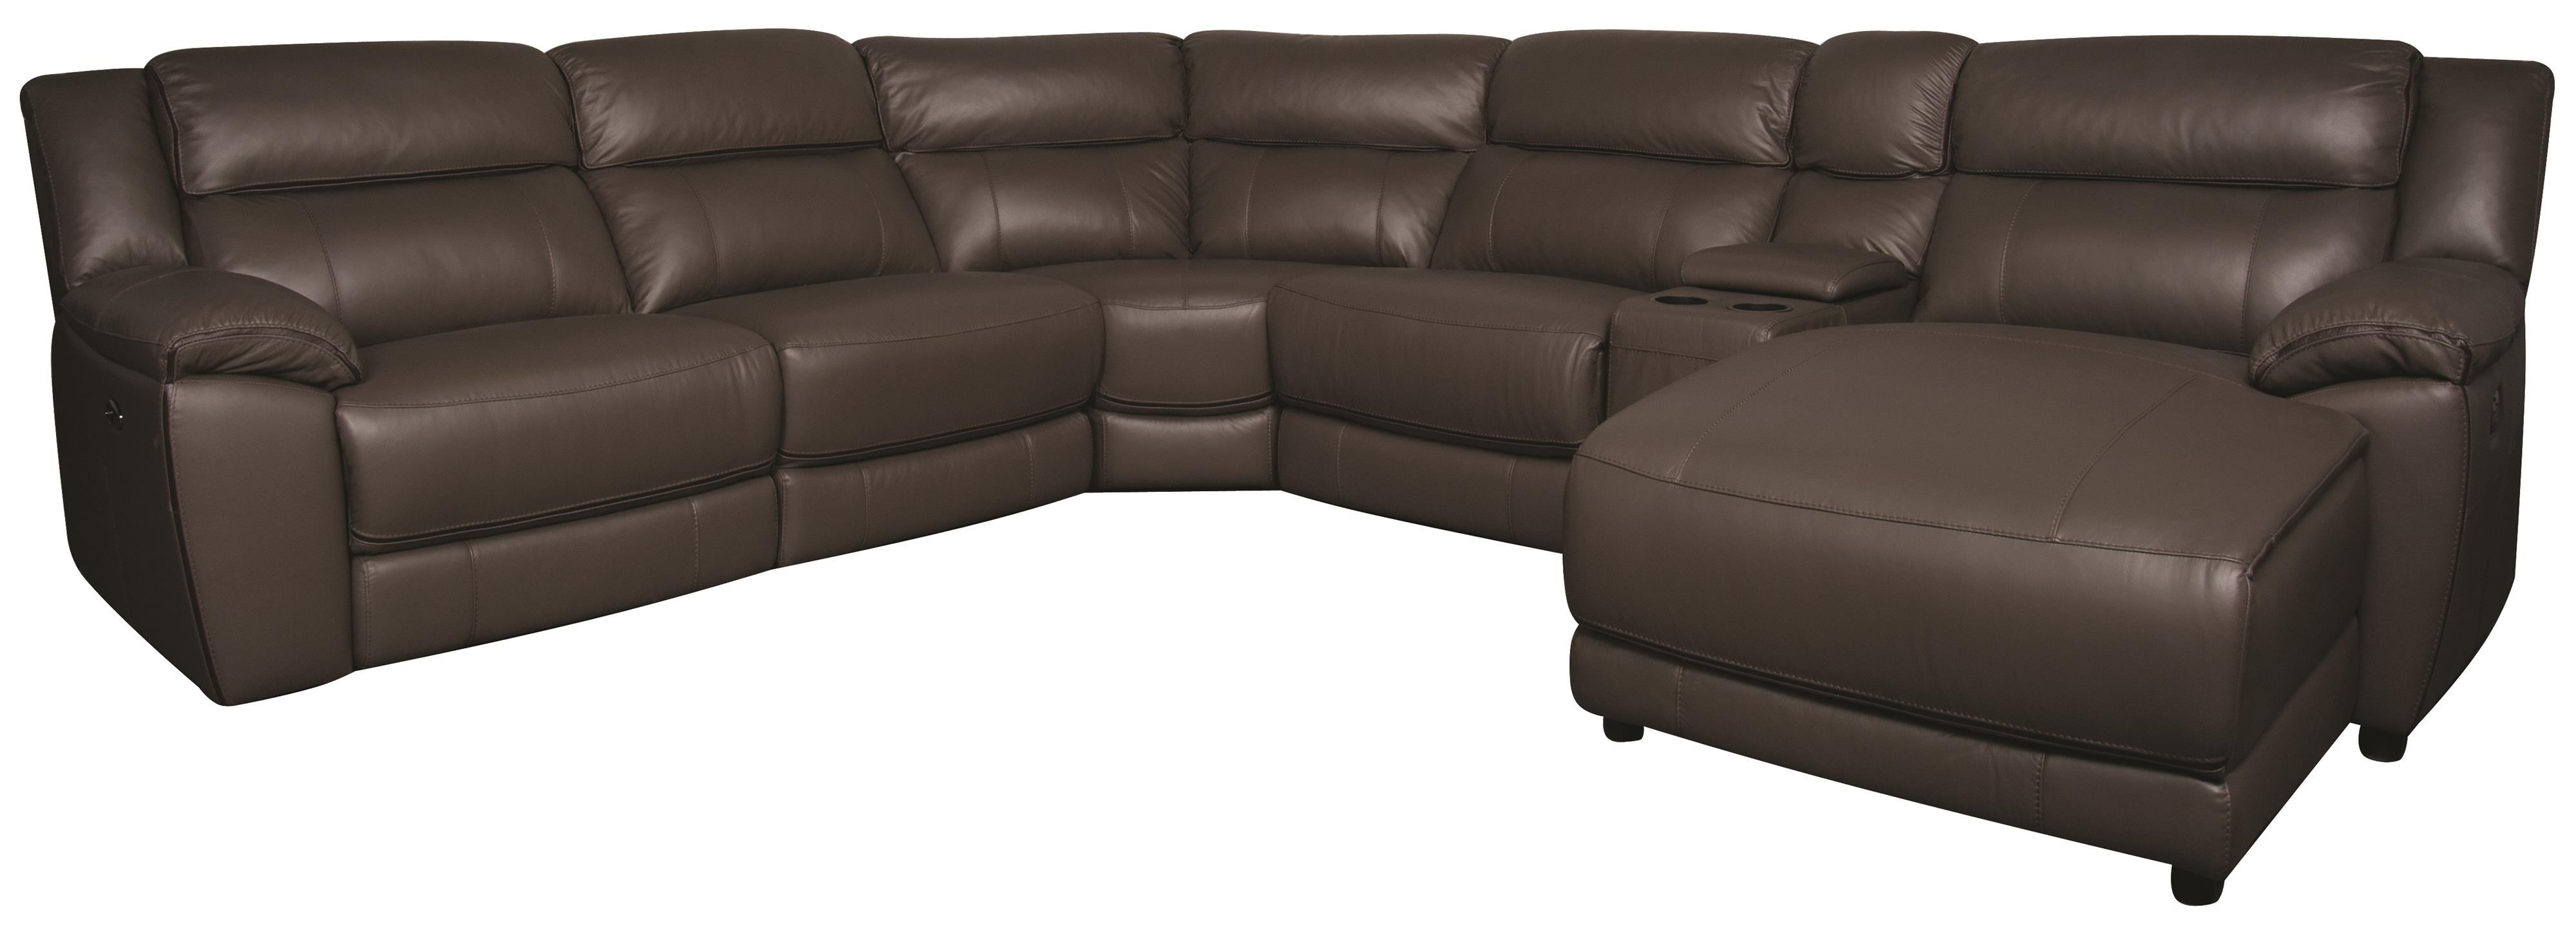 Morris Home Furnishings Ryder Ryder 6-Piece Leather-Match* Power Sectional - Item Number: 134863477